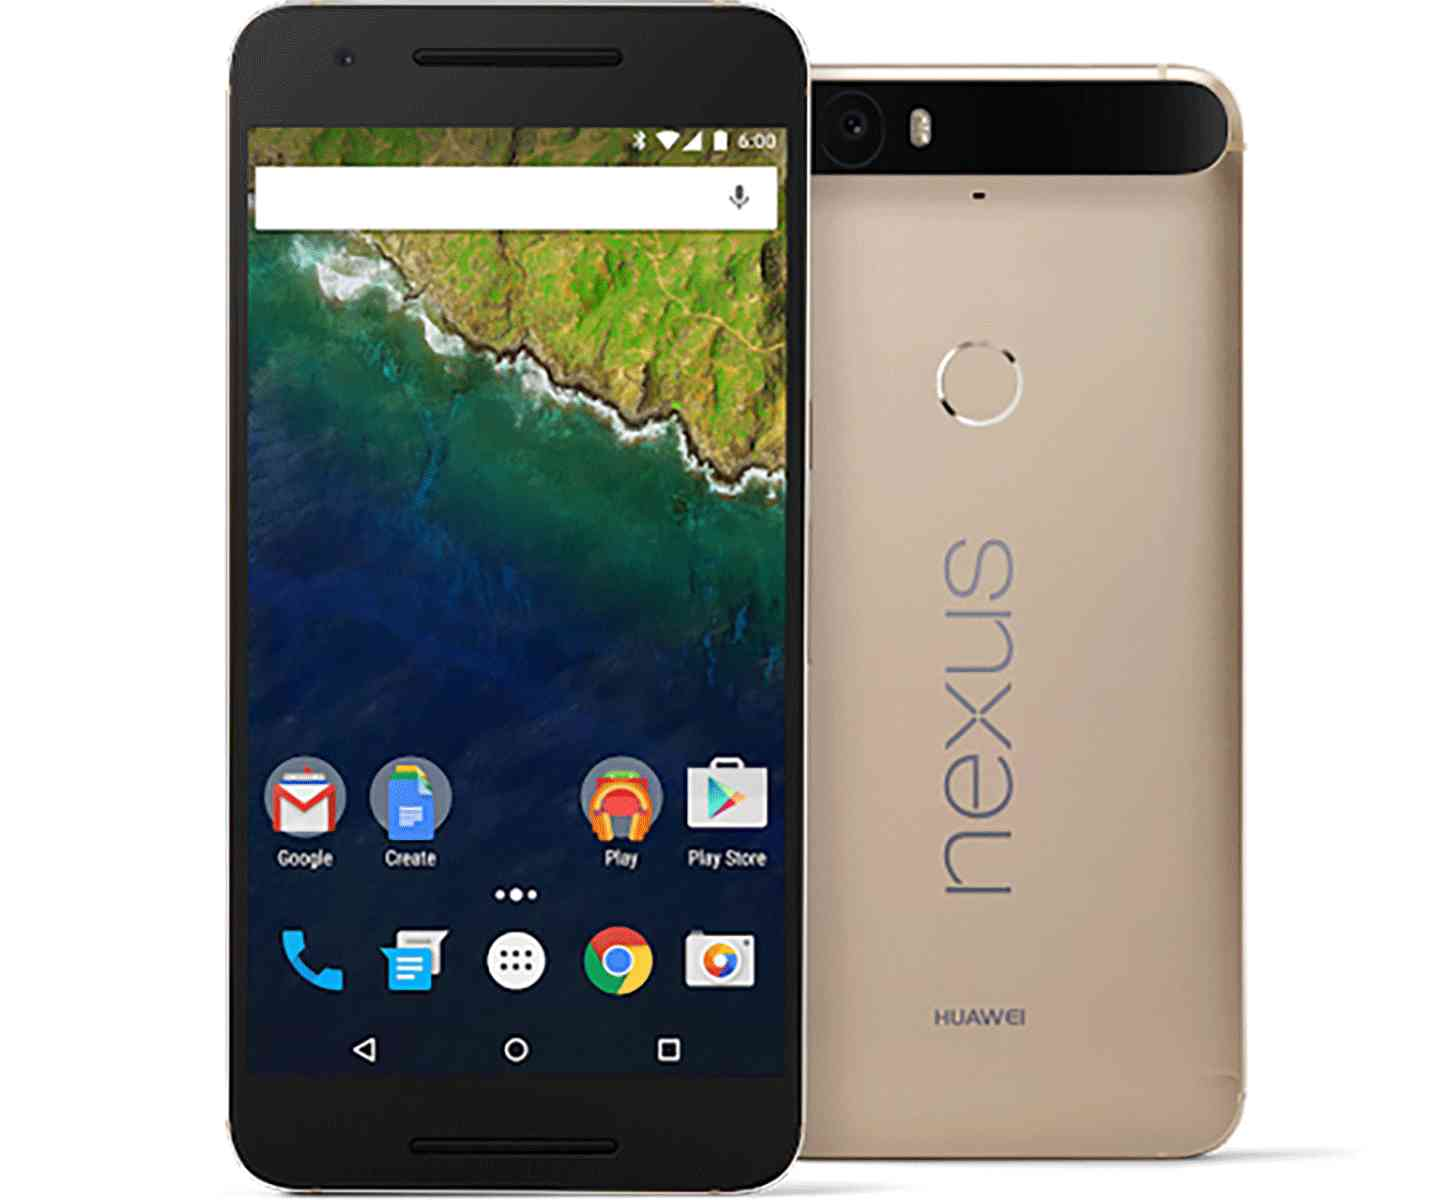 Nexus 6 P, Huawei's Mega Star Smart phone, captures multiple Awards